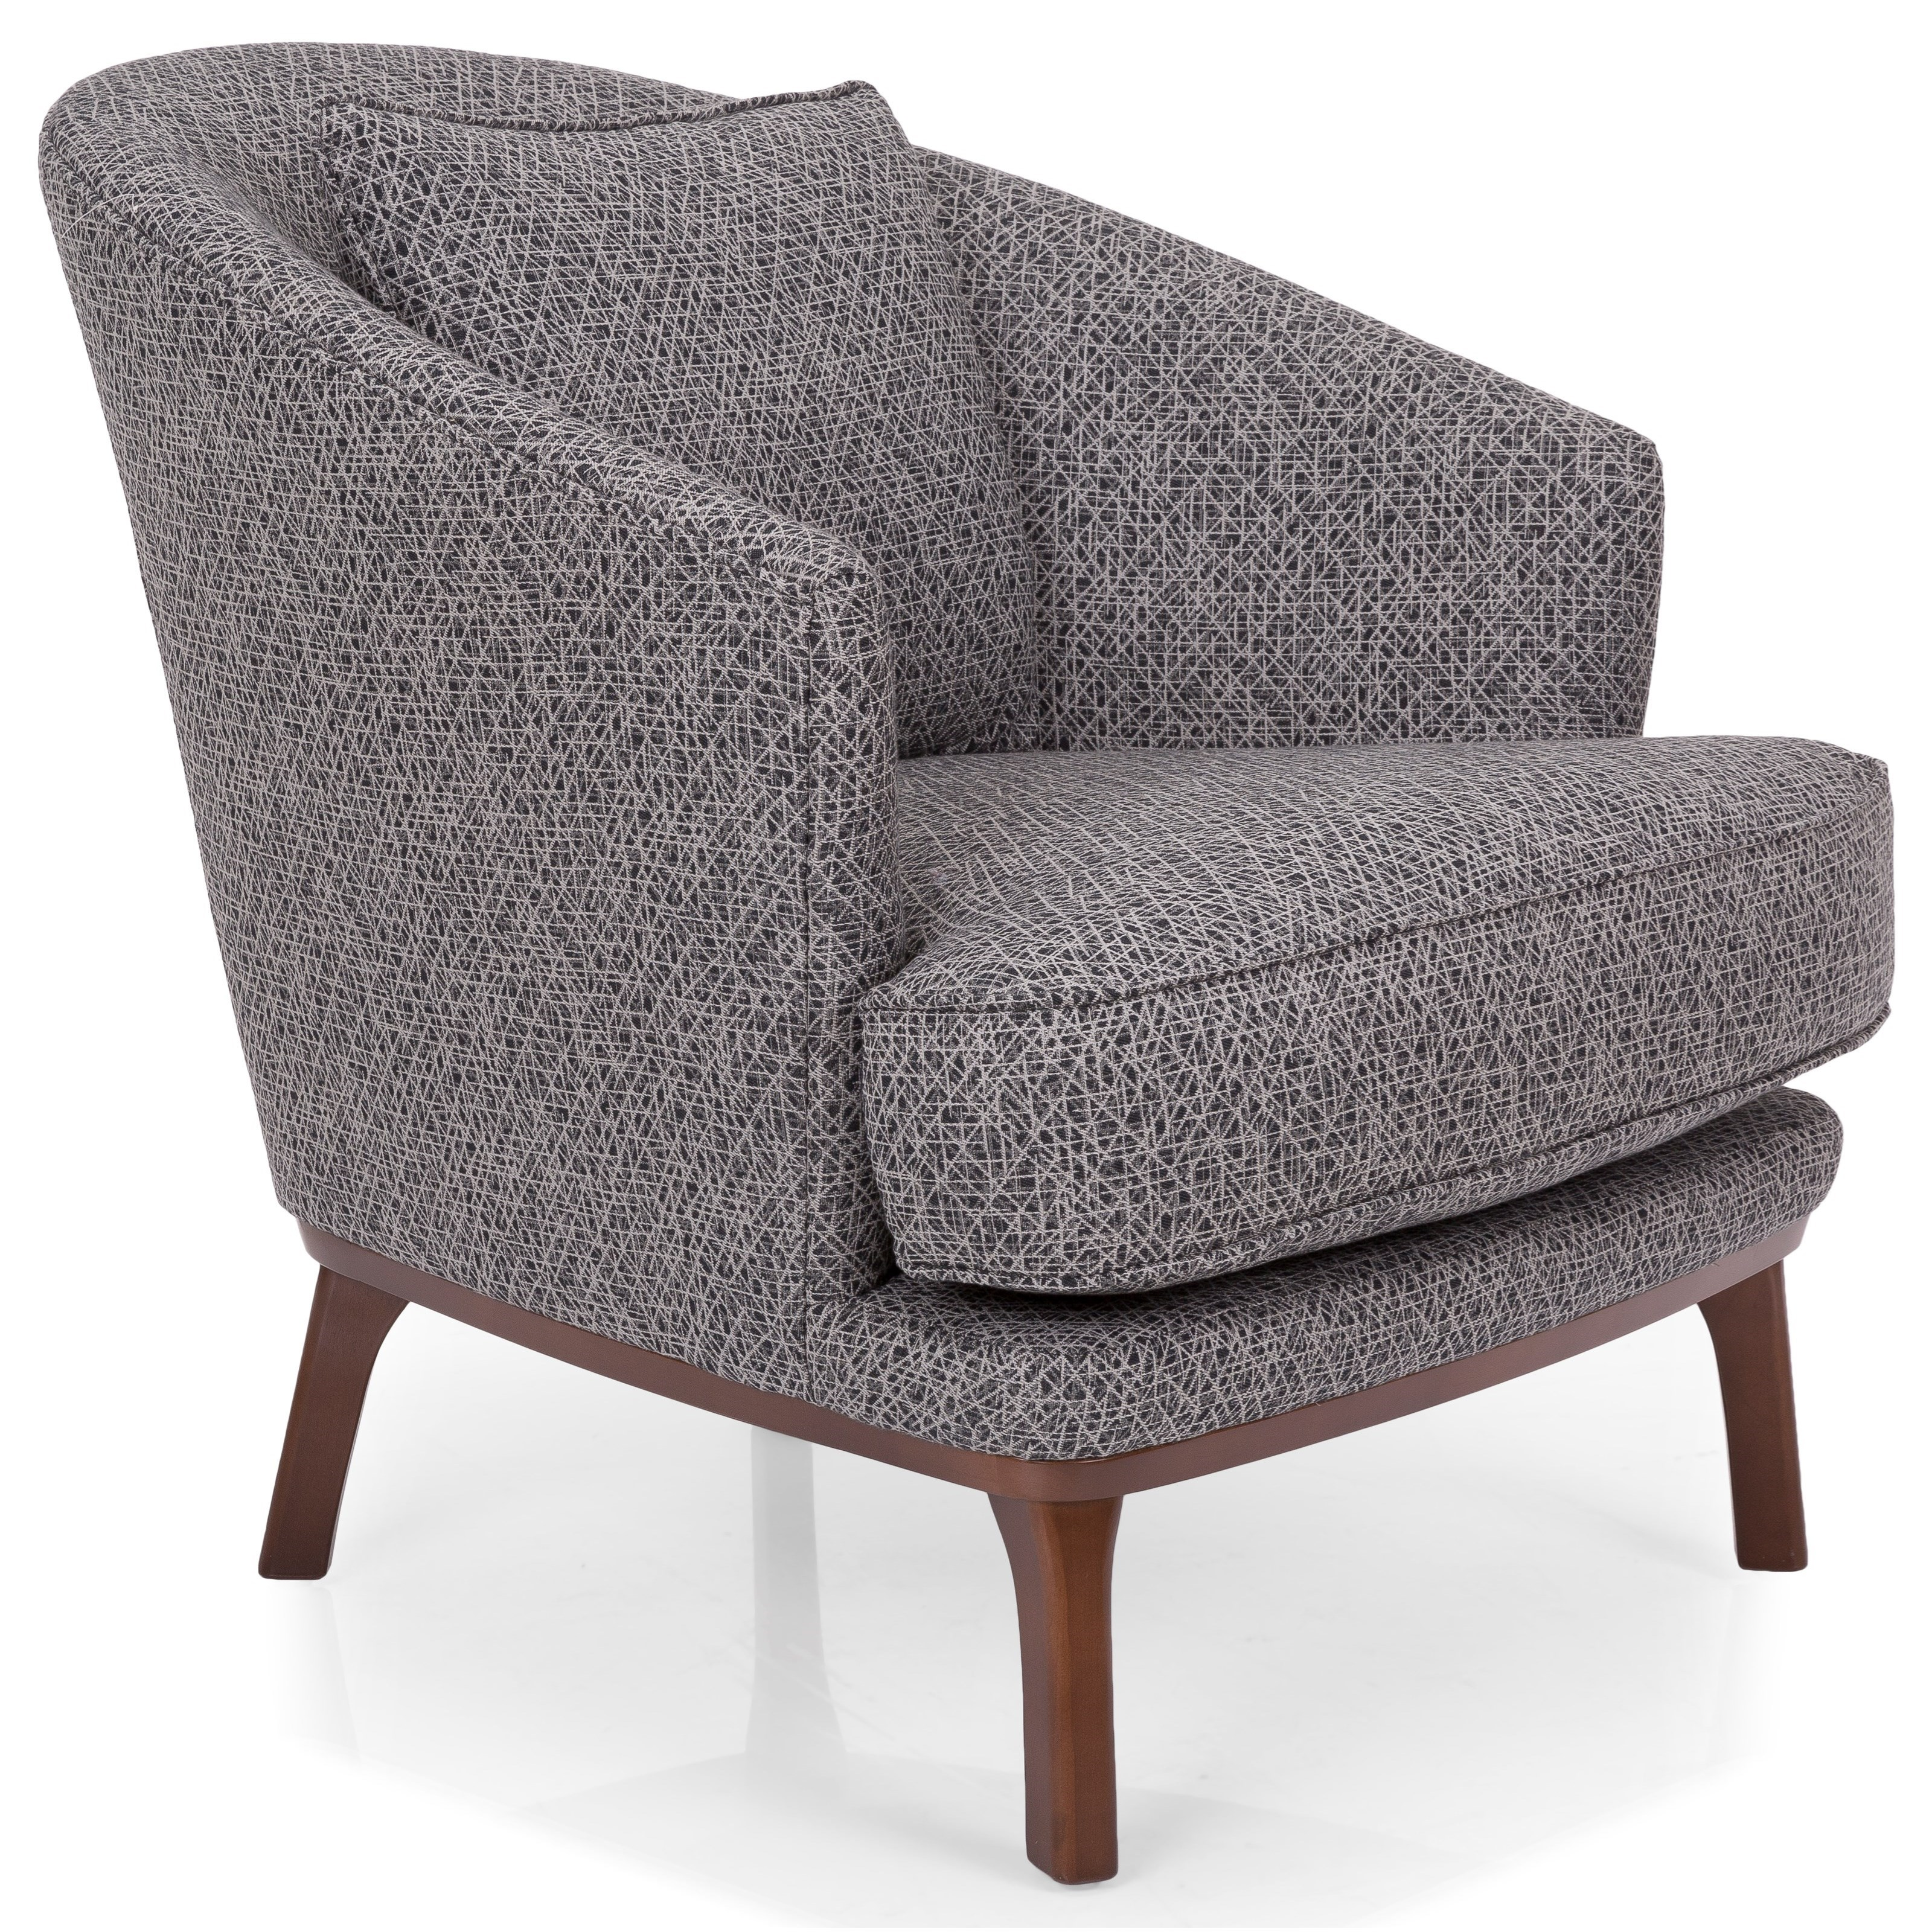 2883 Chair by Decor-Rest at Rooms for Less